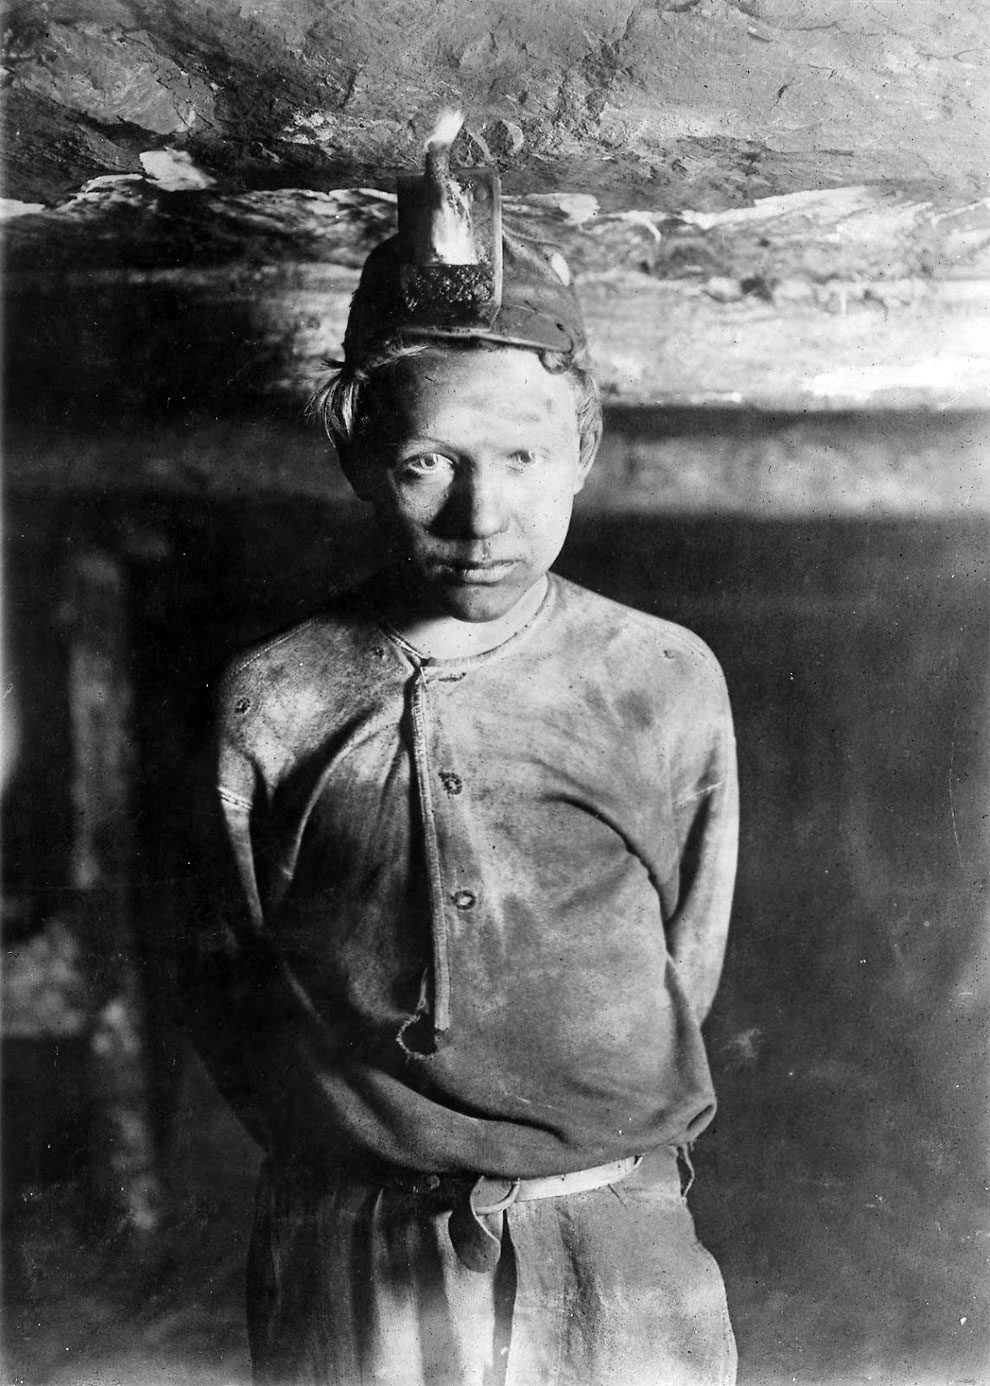 child labor in america horrible photographs that show boys at coal